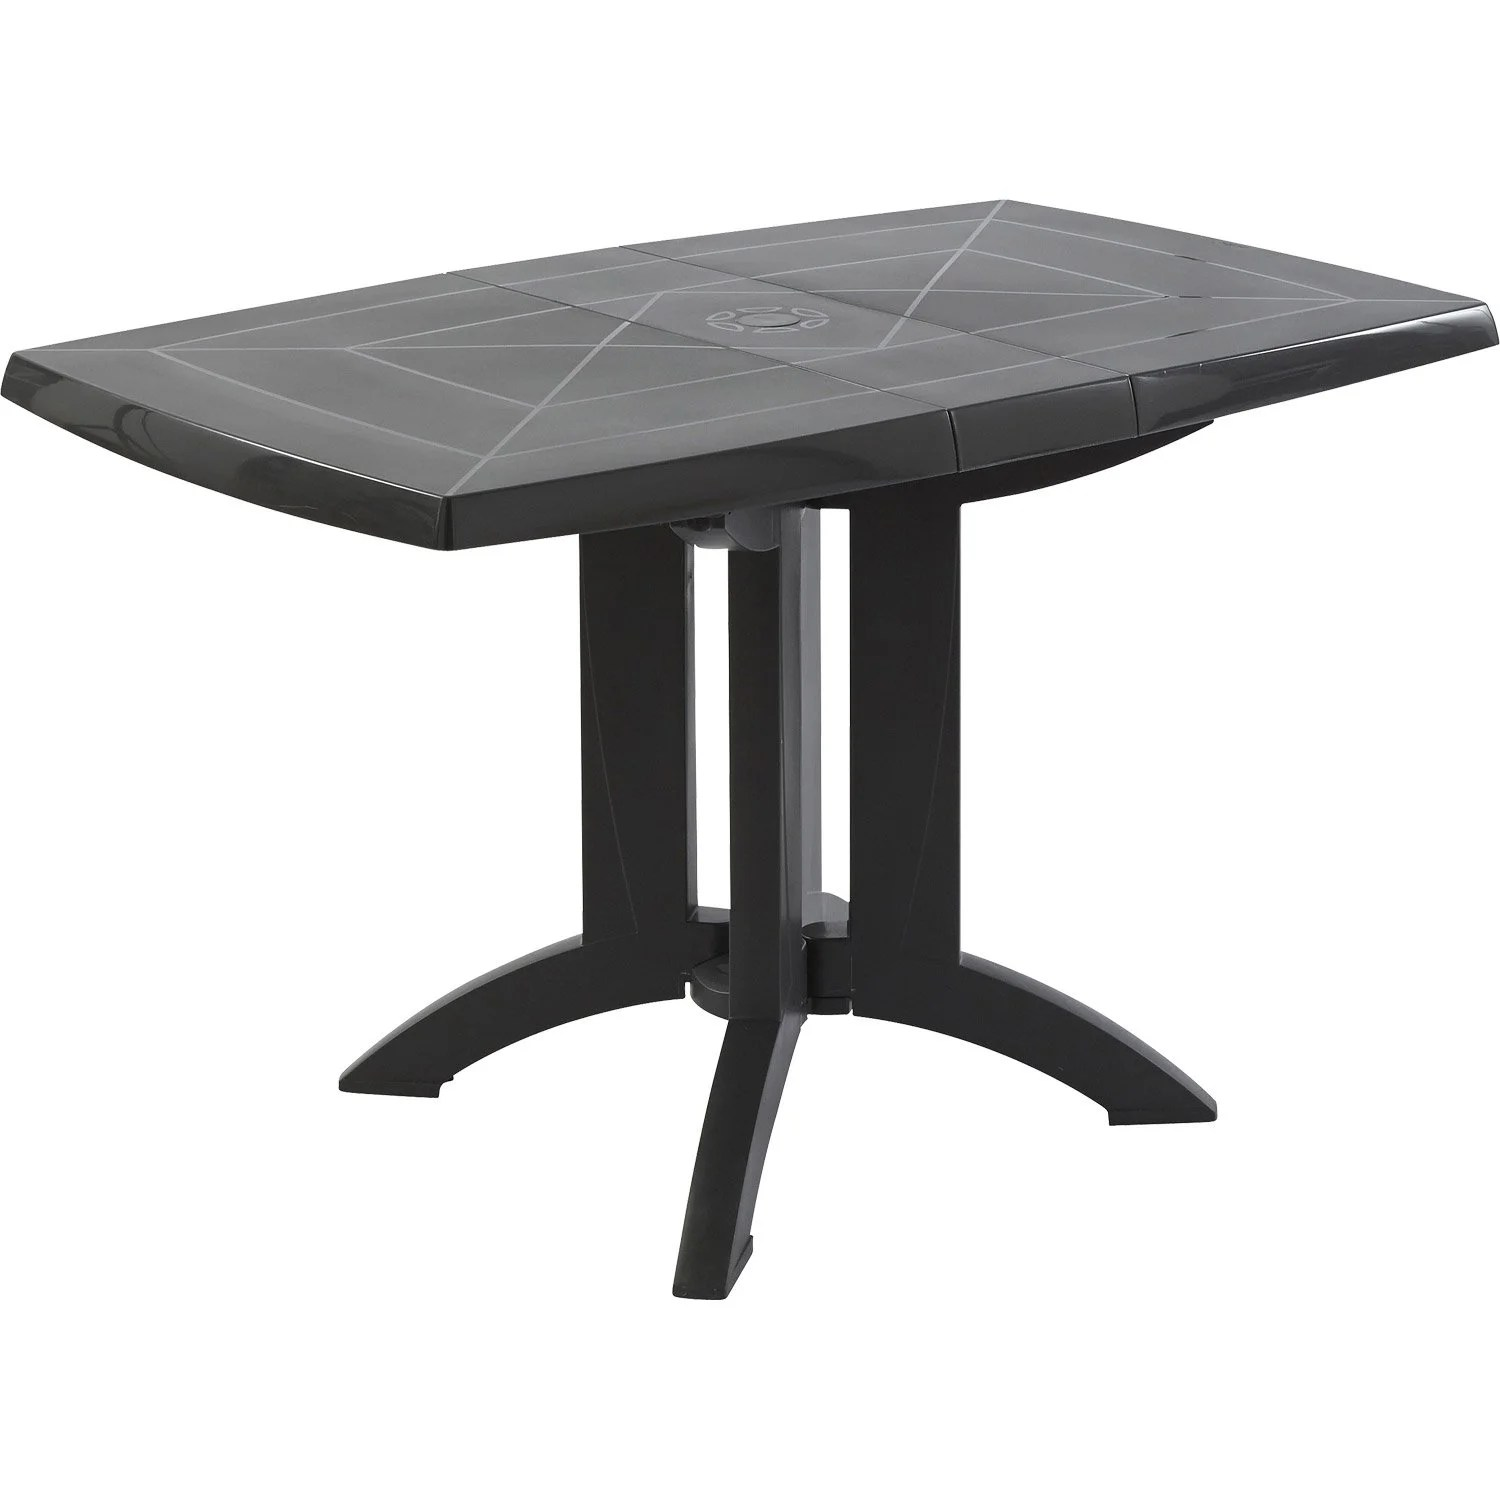 Leroy Merlin Table De Jardin Table De Jardin Grosfillex Véga Rectangulaire Anthracite 4